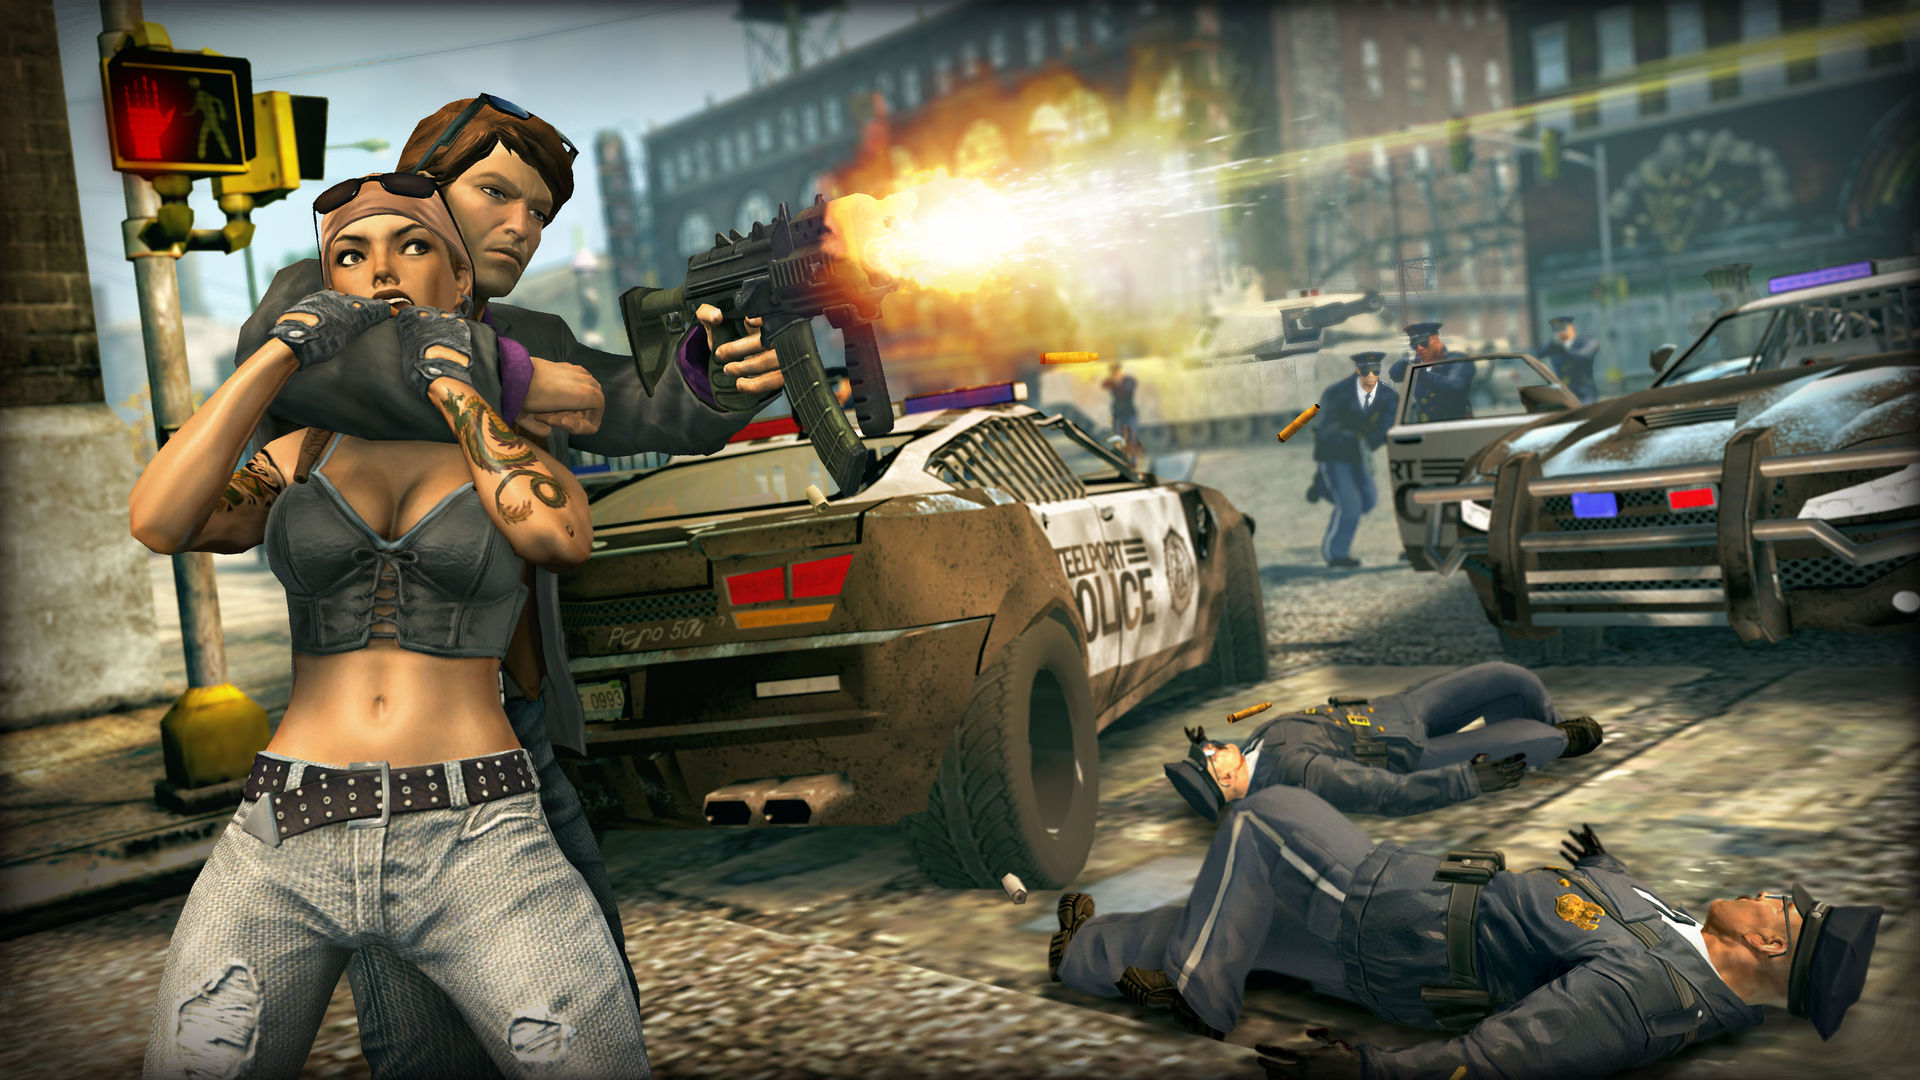 моды для saints row 4 убрать цензуру